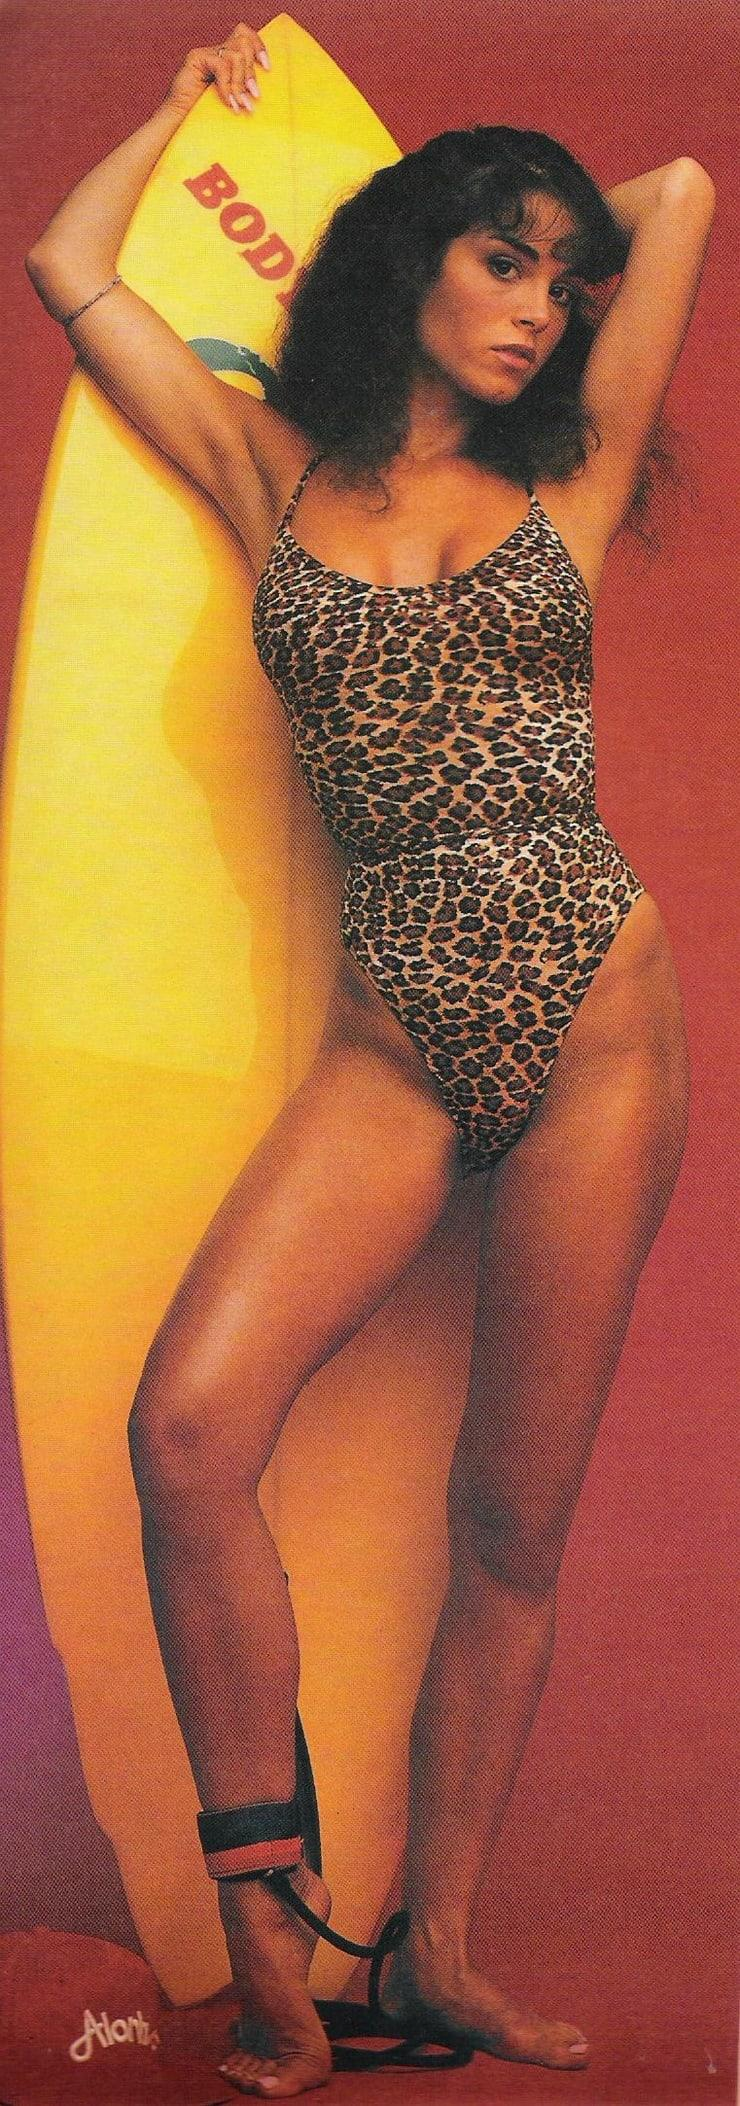 Betsy Russell sexy lingerie pics